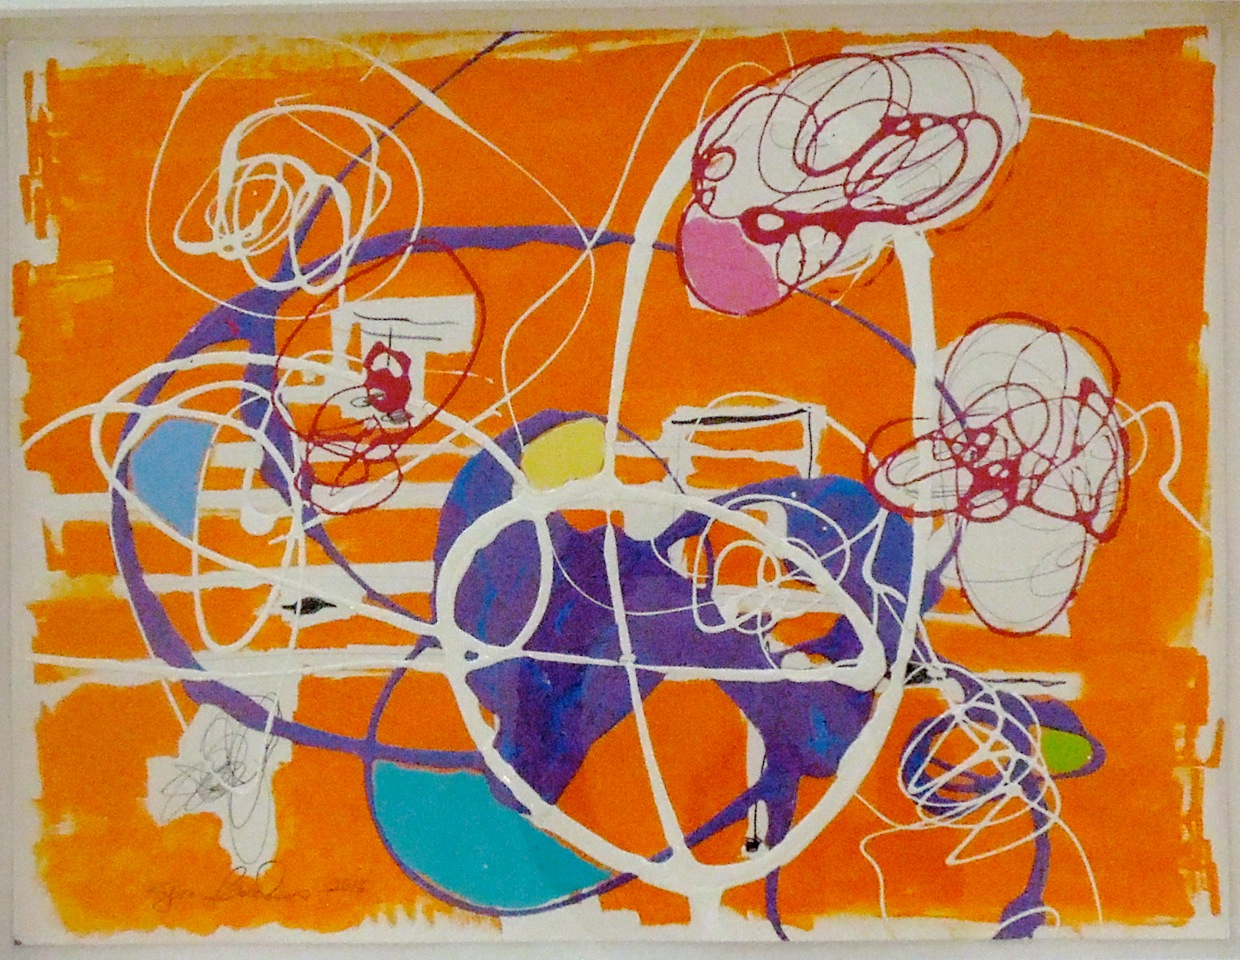 """Serena Bocchino   In the Key of Orange,  2014   Enamel, paint and graphite on panel  17.5"""" x 24"""" image 29"""" x 34.5"""" framed  Retail Value: $1,800   Opening Bid: $600"""